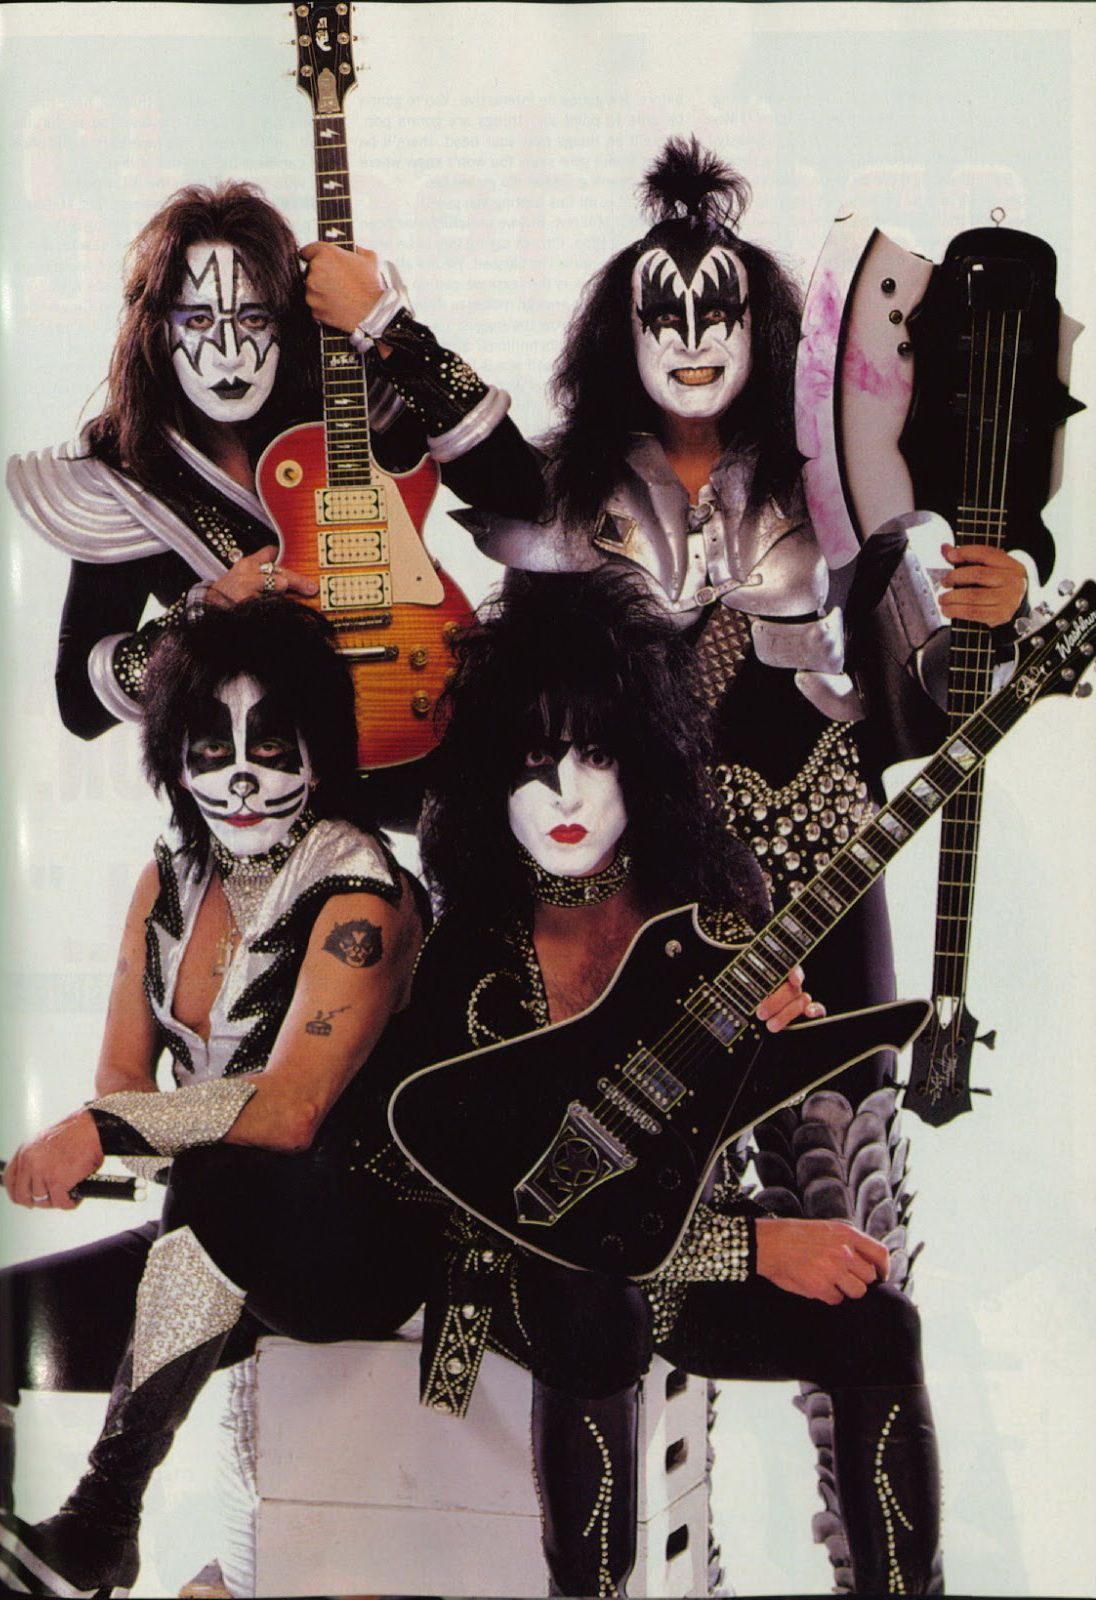 Paul Stanley (rhythm guitar, lead vocals), Gene Simmons (bass guitar, lead vocals), Ace Frehley (lead guitar, lead vocals), Peter Criss (drums, vocals) - KISS (1997)